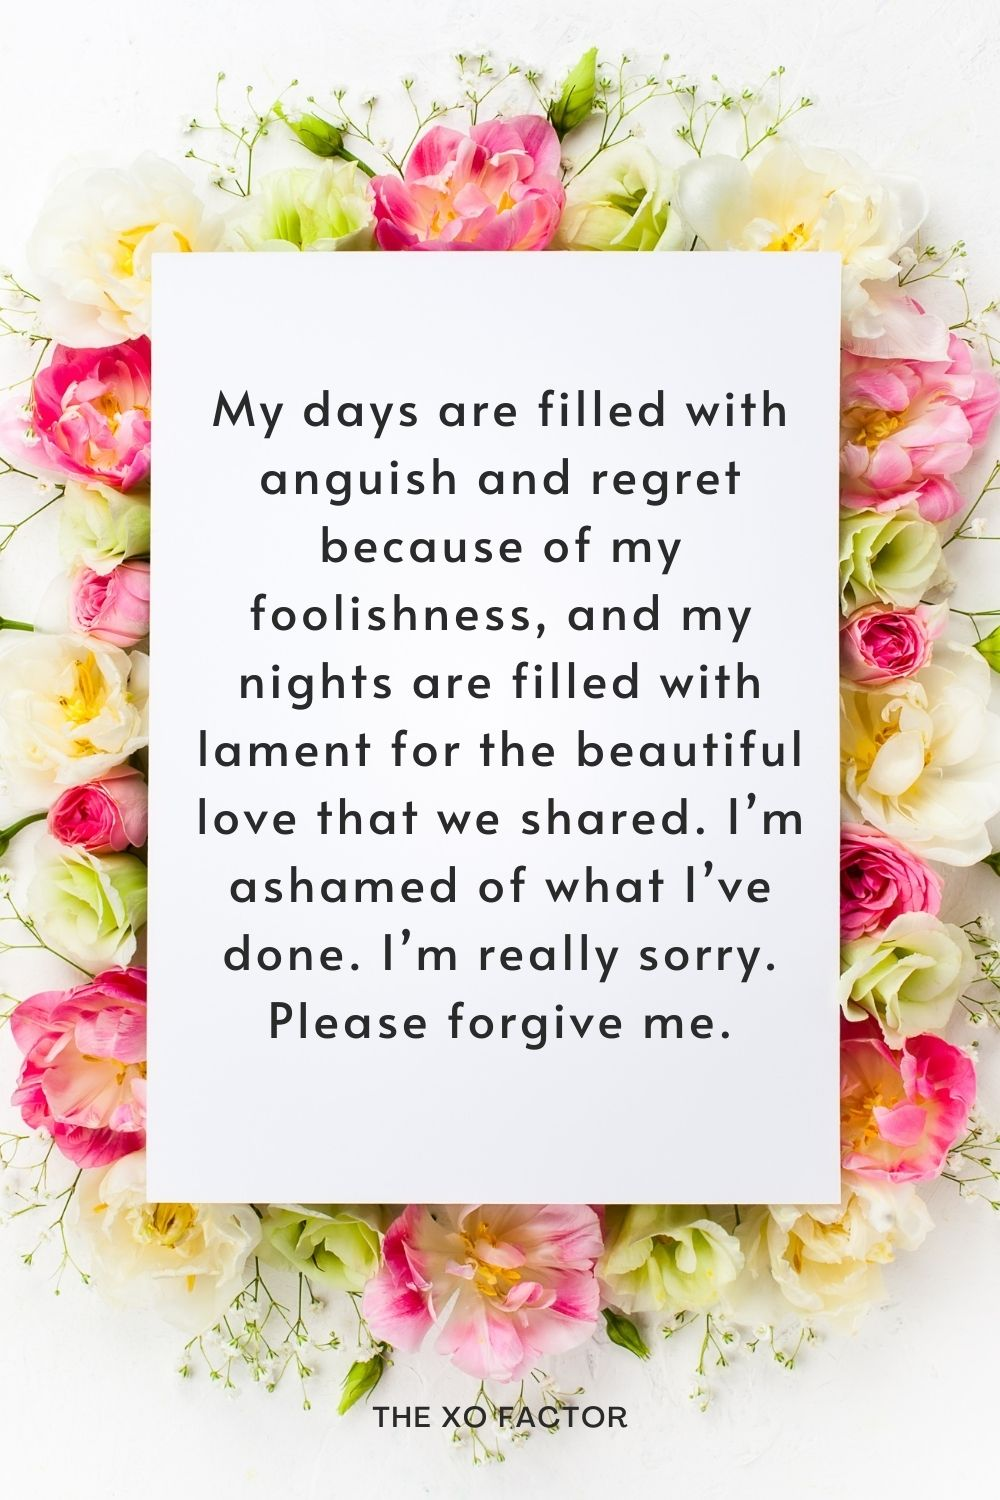 My days are filled with anguish and regret because of my foolishness, and my nights are filled with lament for the beautiful love that we shared. I'm ashamed of what I've done. I'm really sorry. Please forgive me.